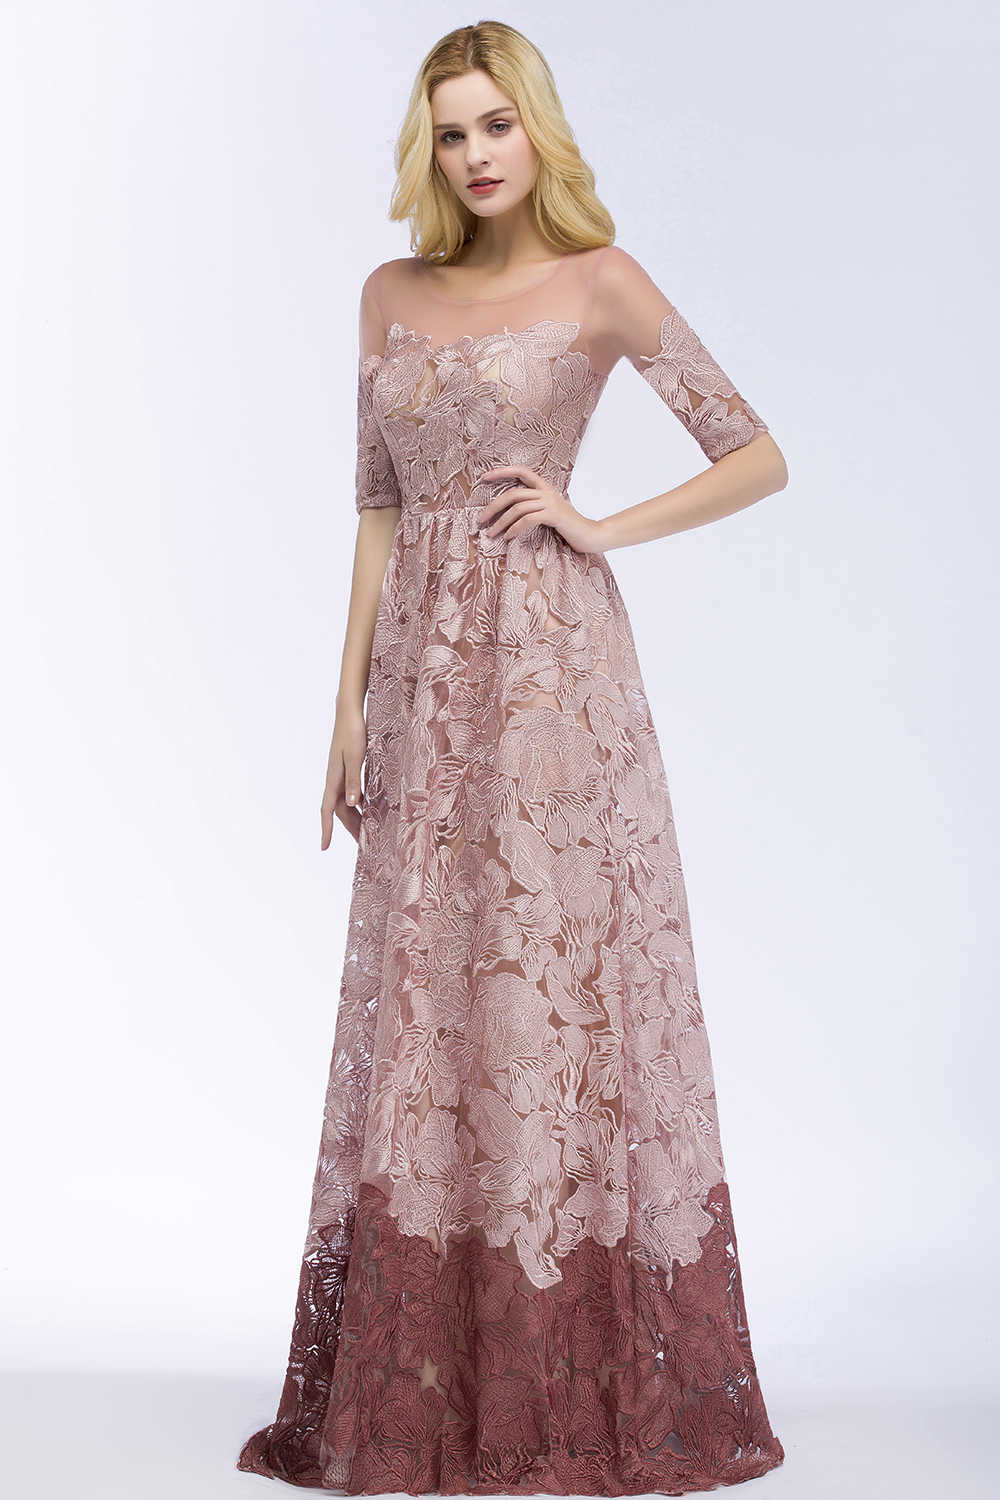 430bed5b97fcf Babyonline Half Sleeves Dusty Rose Lace Evening Dresses 2019 Elegant O Neck  Formal Evening Gowns Party Dress robe de soiree